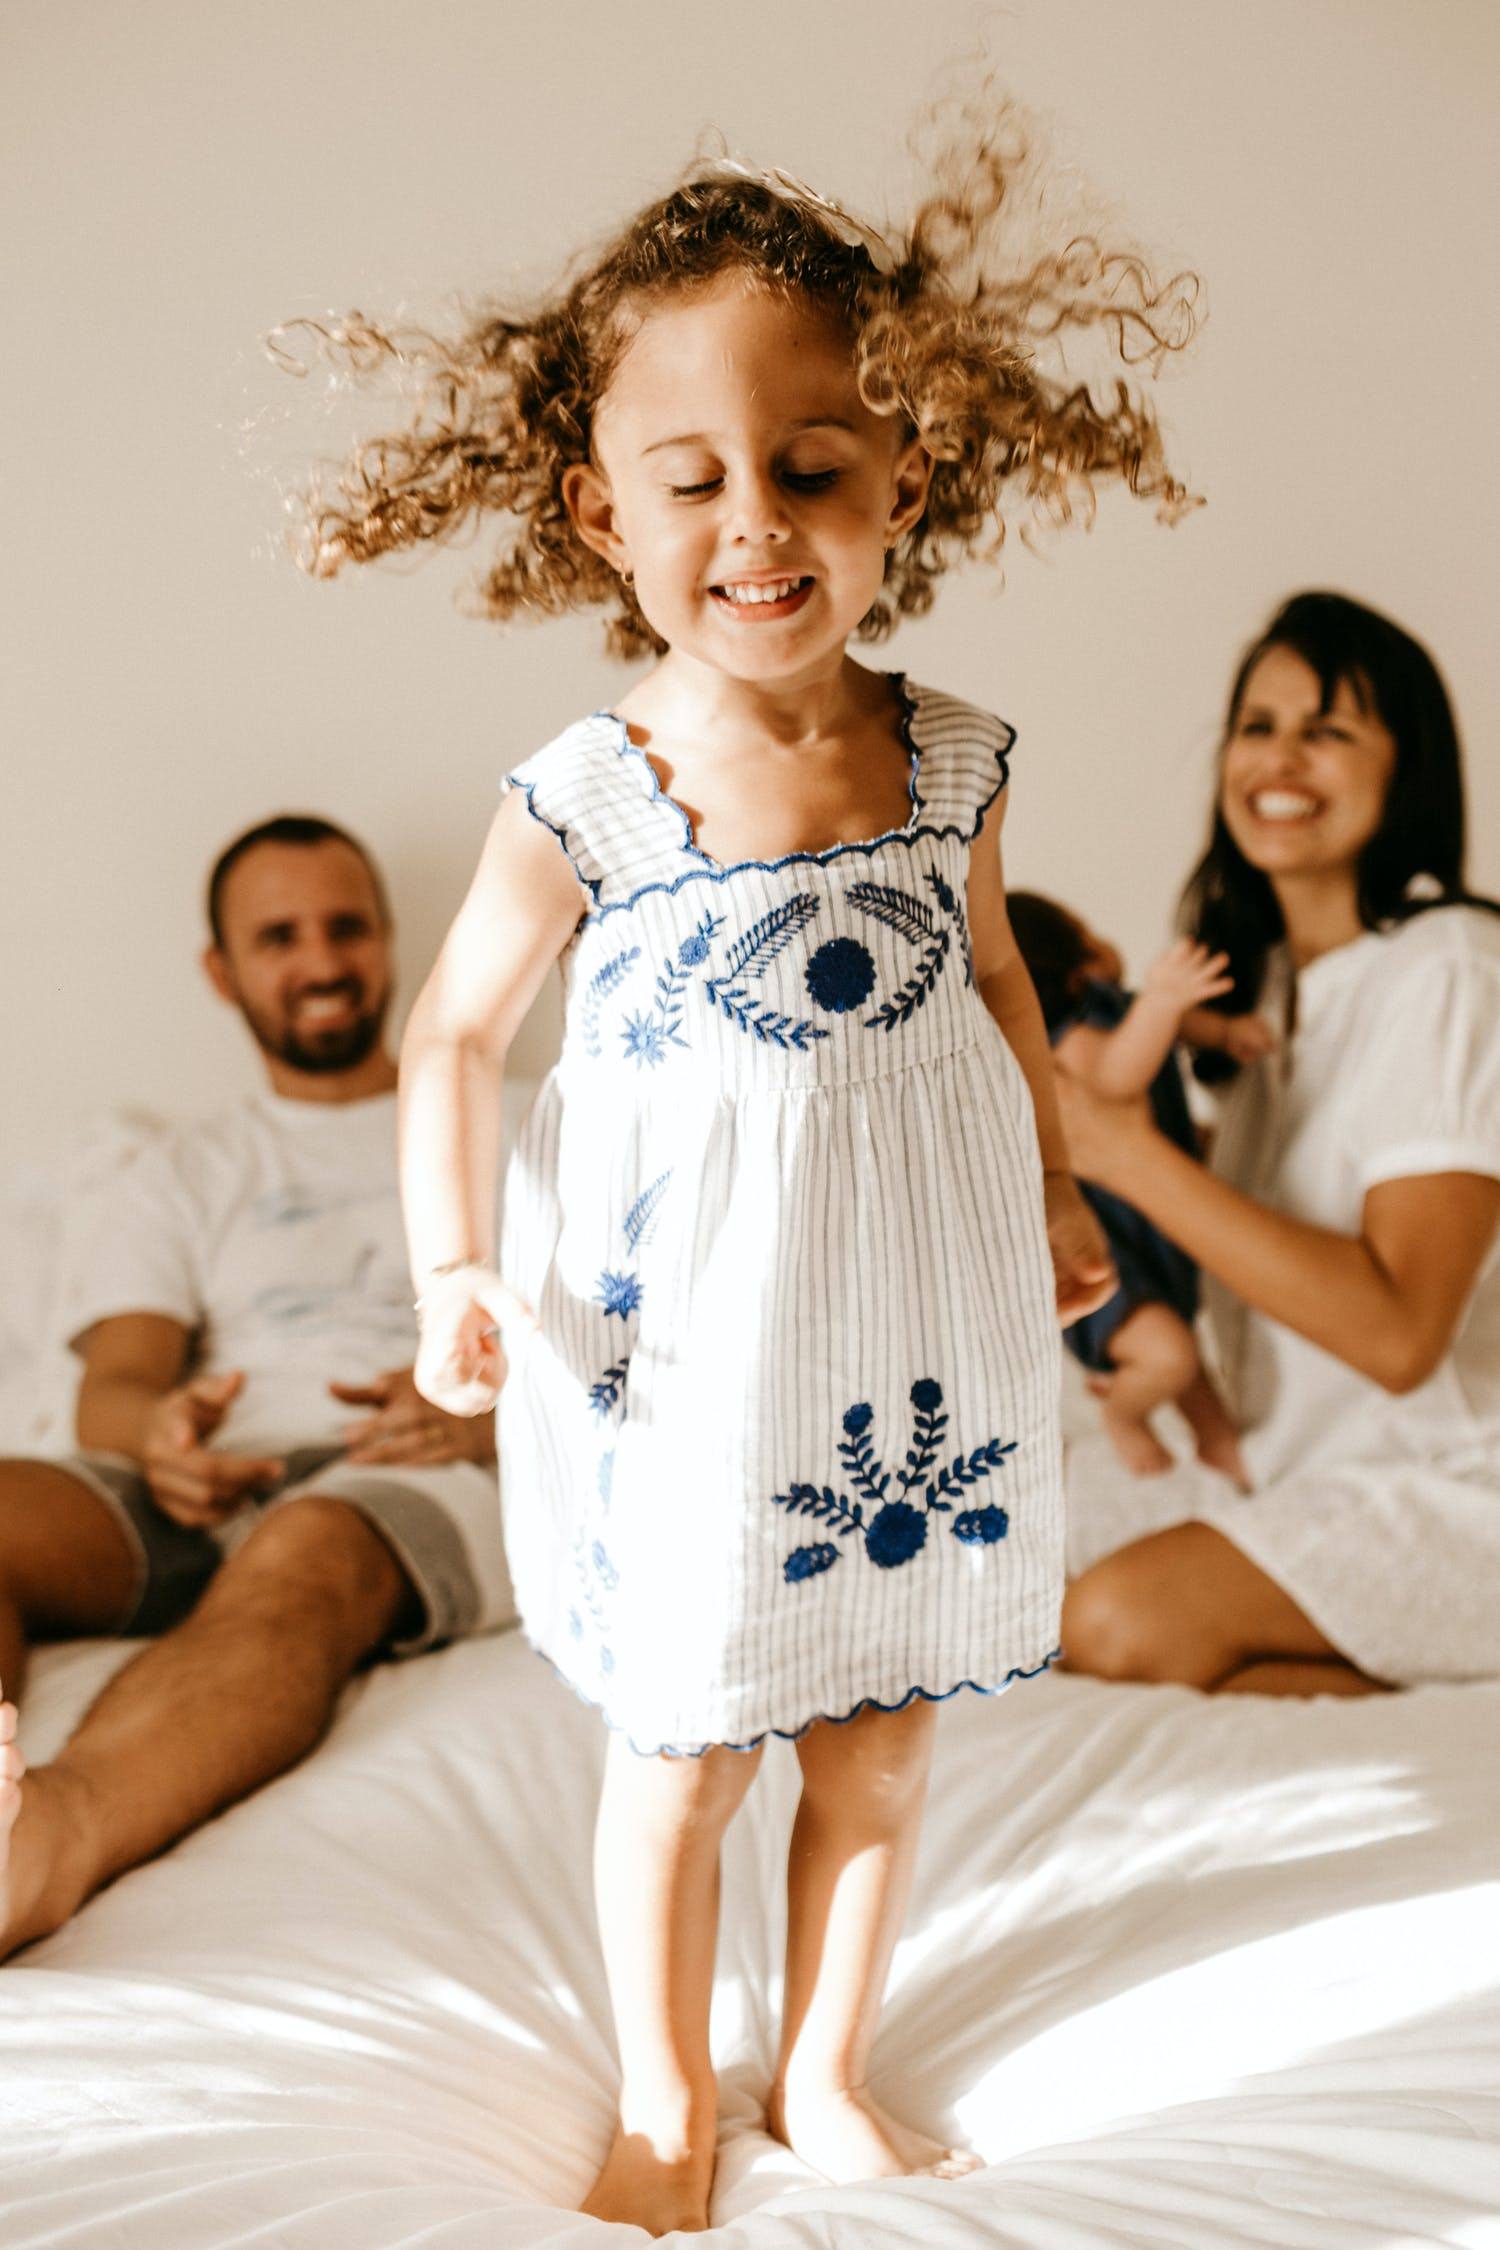 Adorable little girl with curly hair in light dress jumping on bed with closed eyes near happy young parents and newborn baby